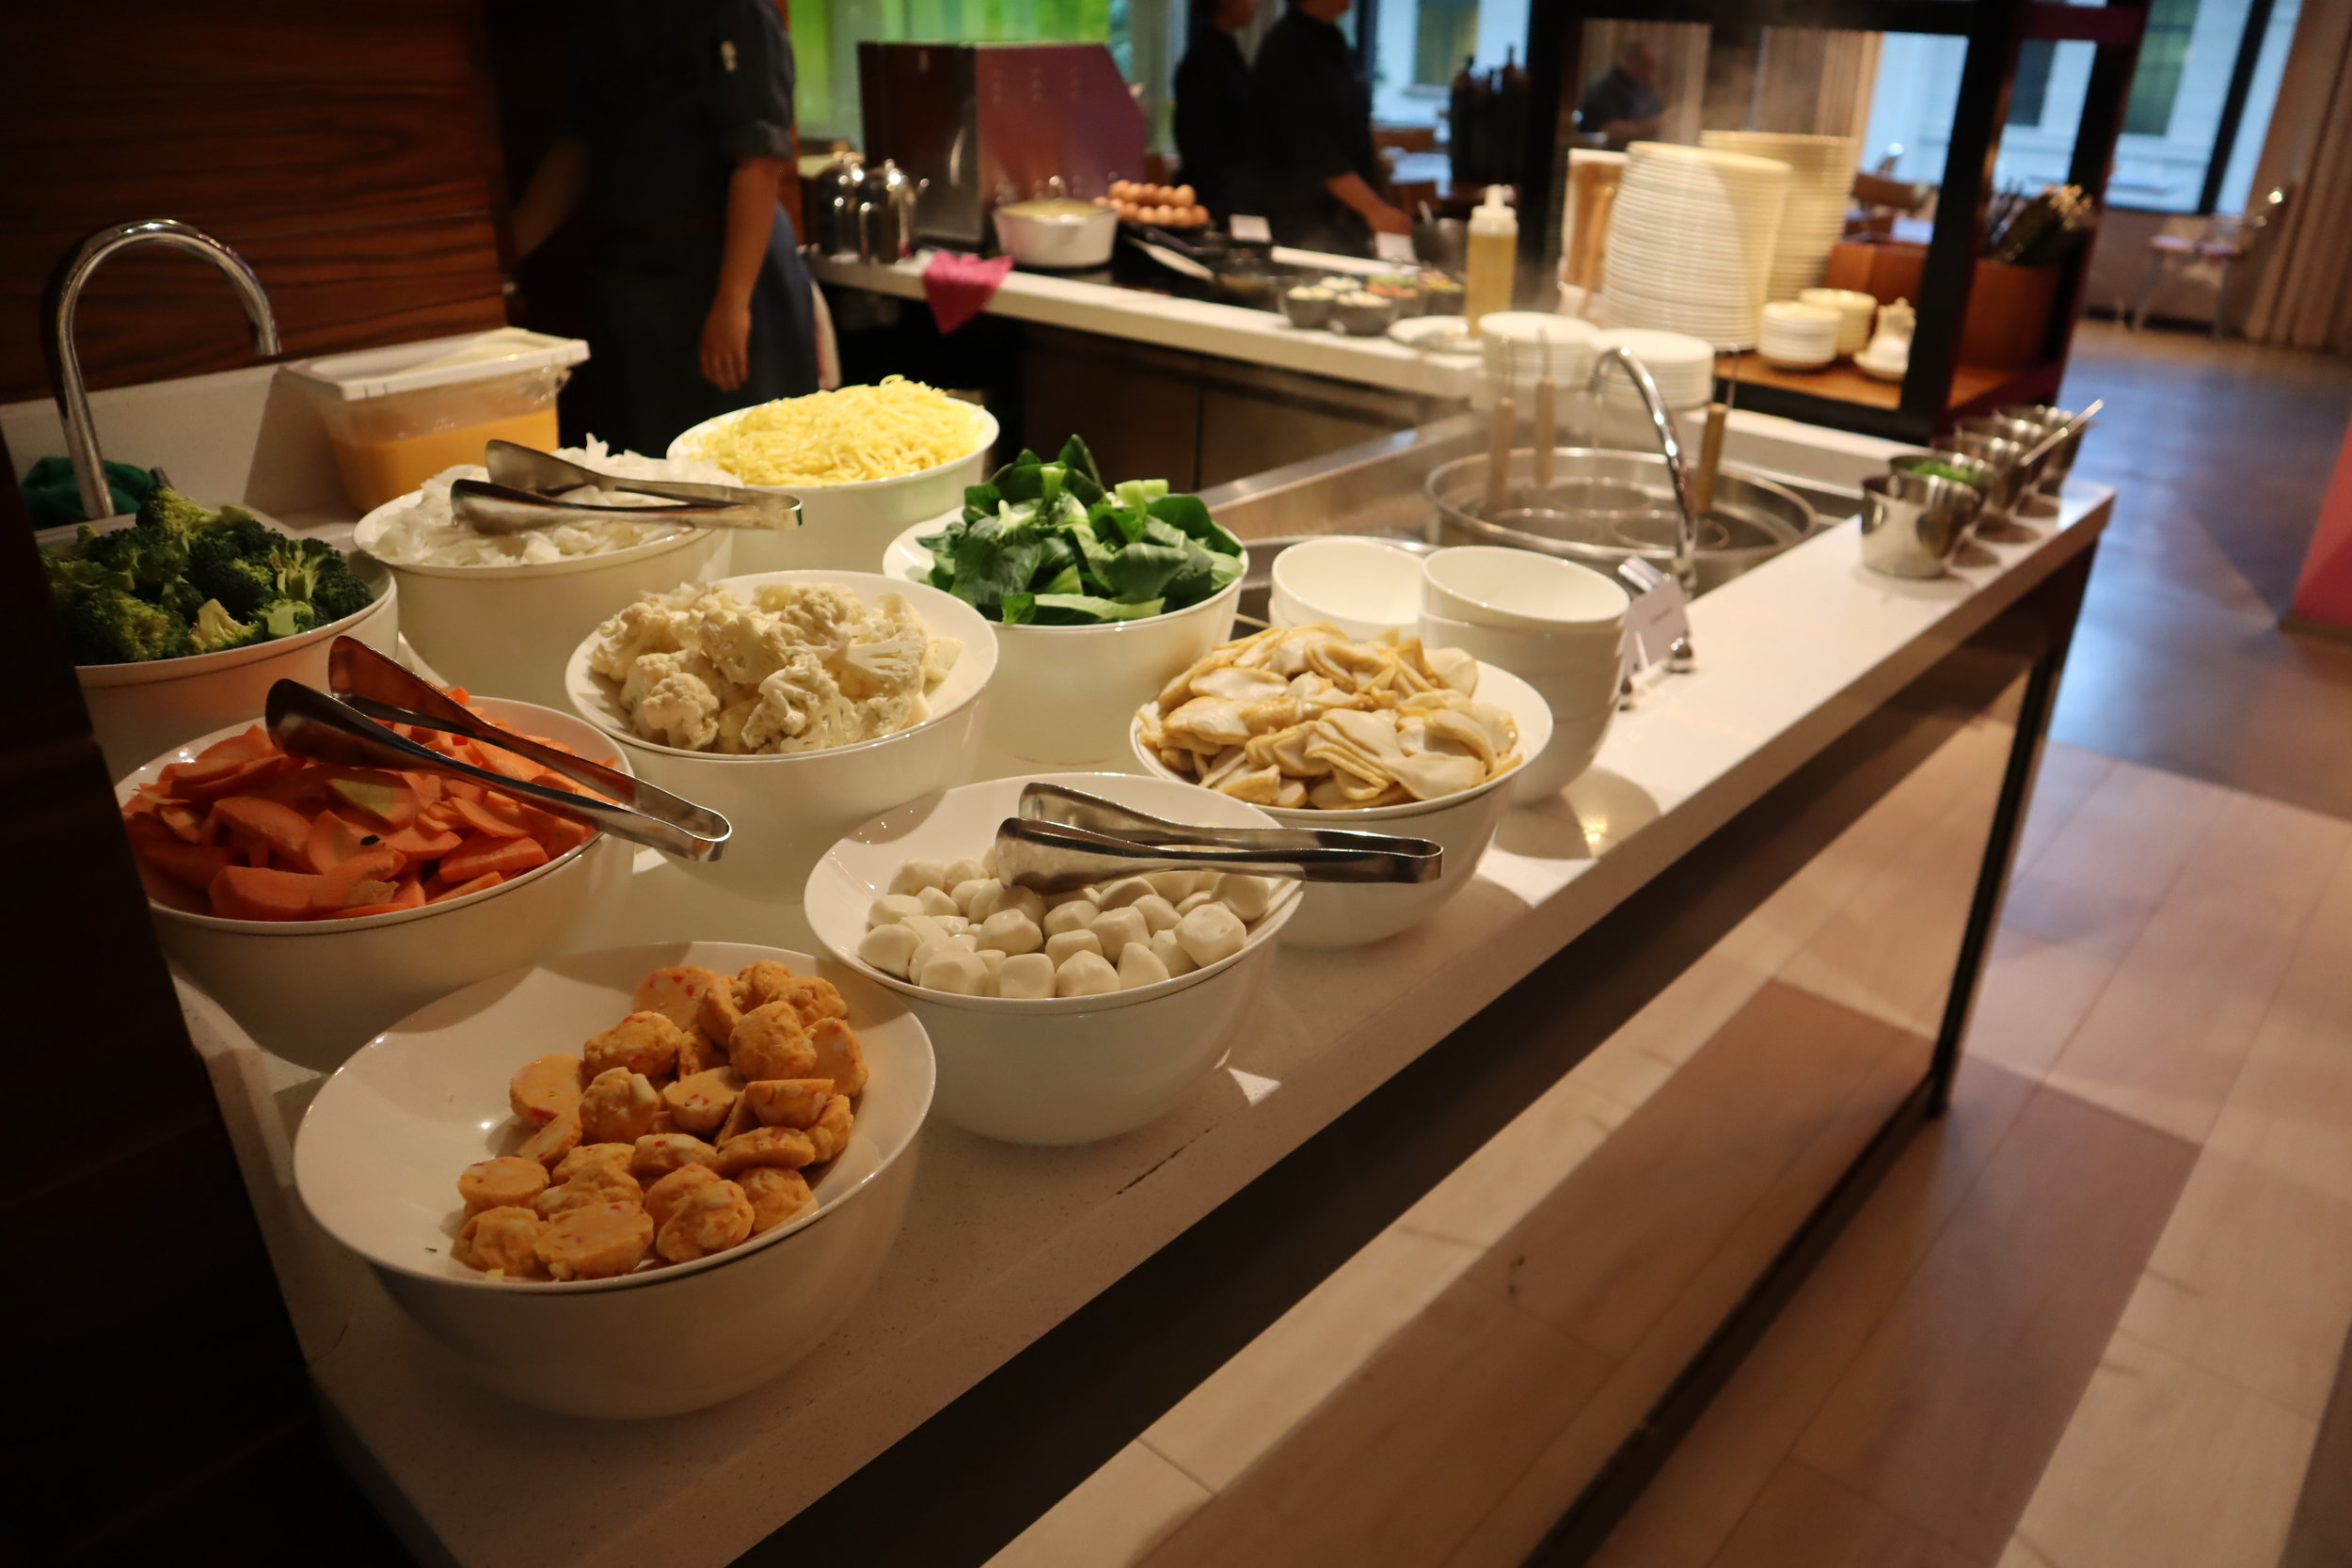 JW Marriott Singapore South Beach – Noodle station